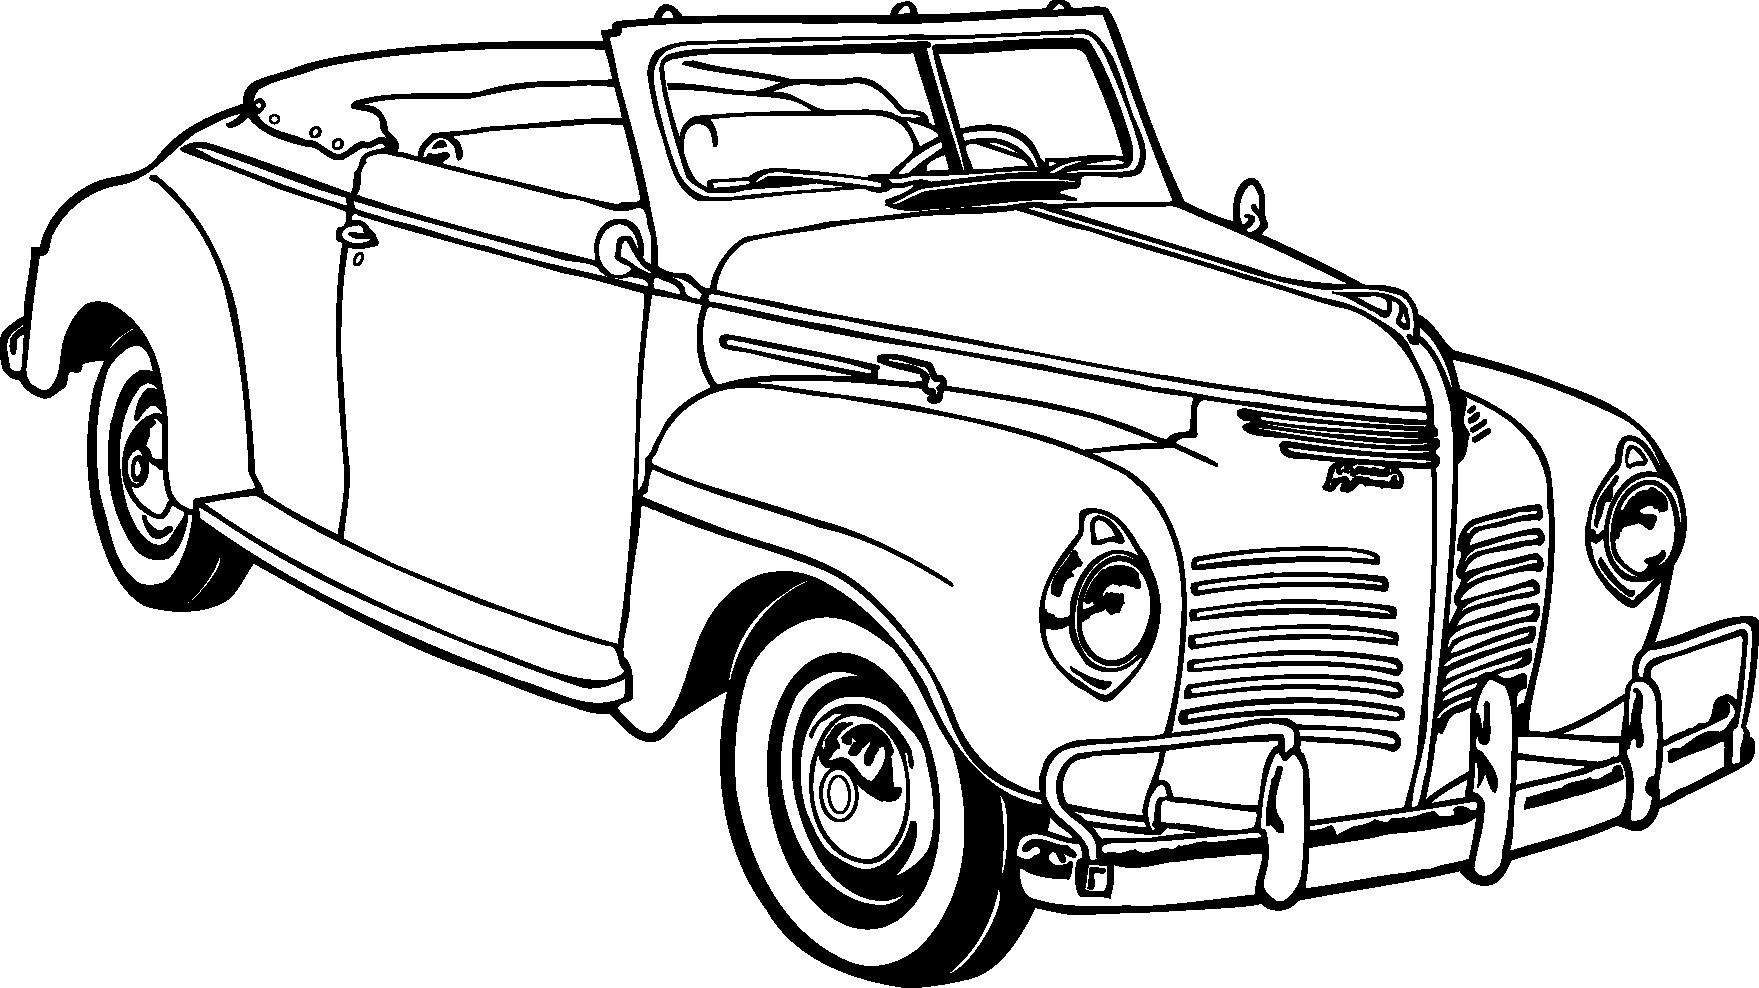 Vintage car clipart vector clip art free download Old Classic Cars Silhouette | Silhouettes Vector | Pinterest | Car ... clip art free download